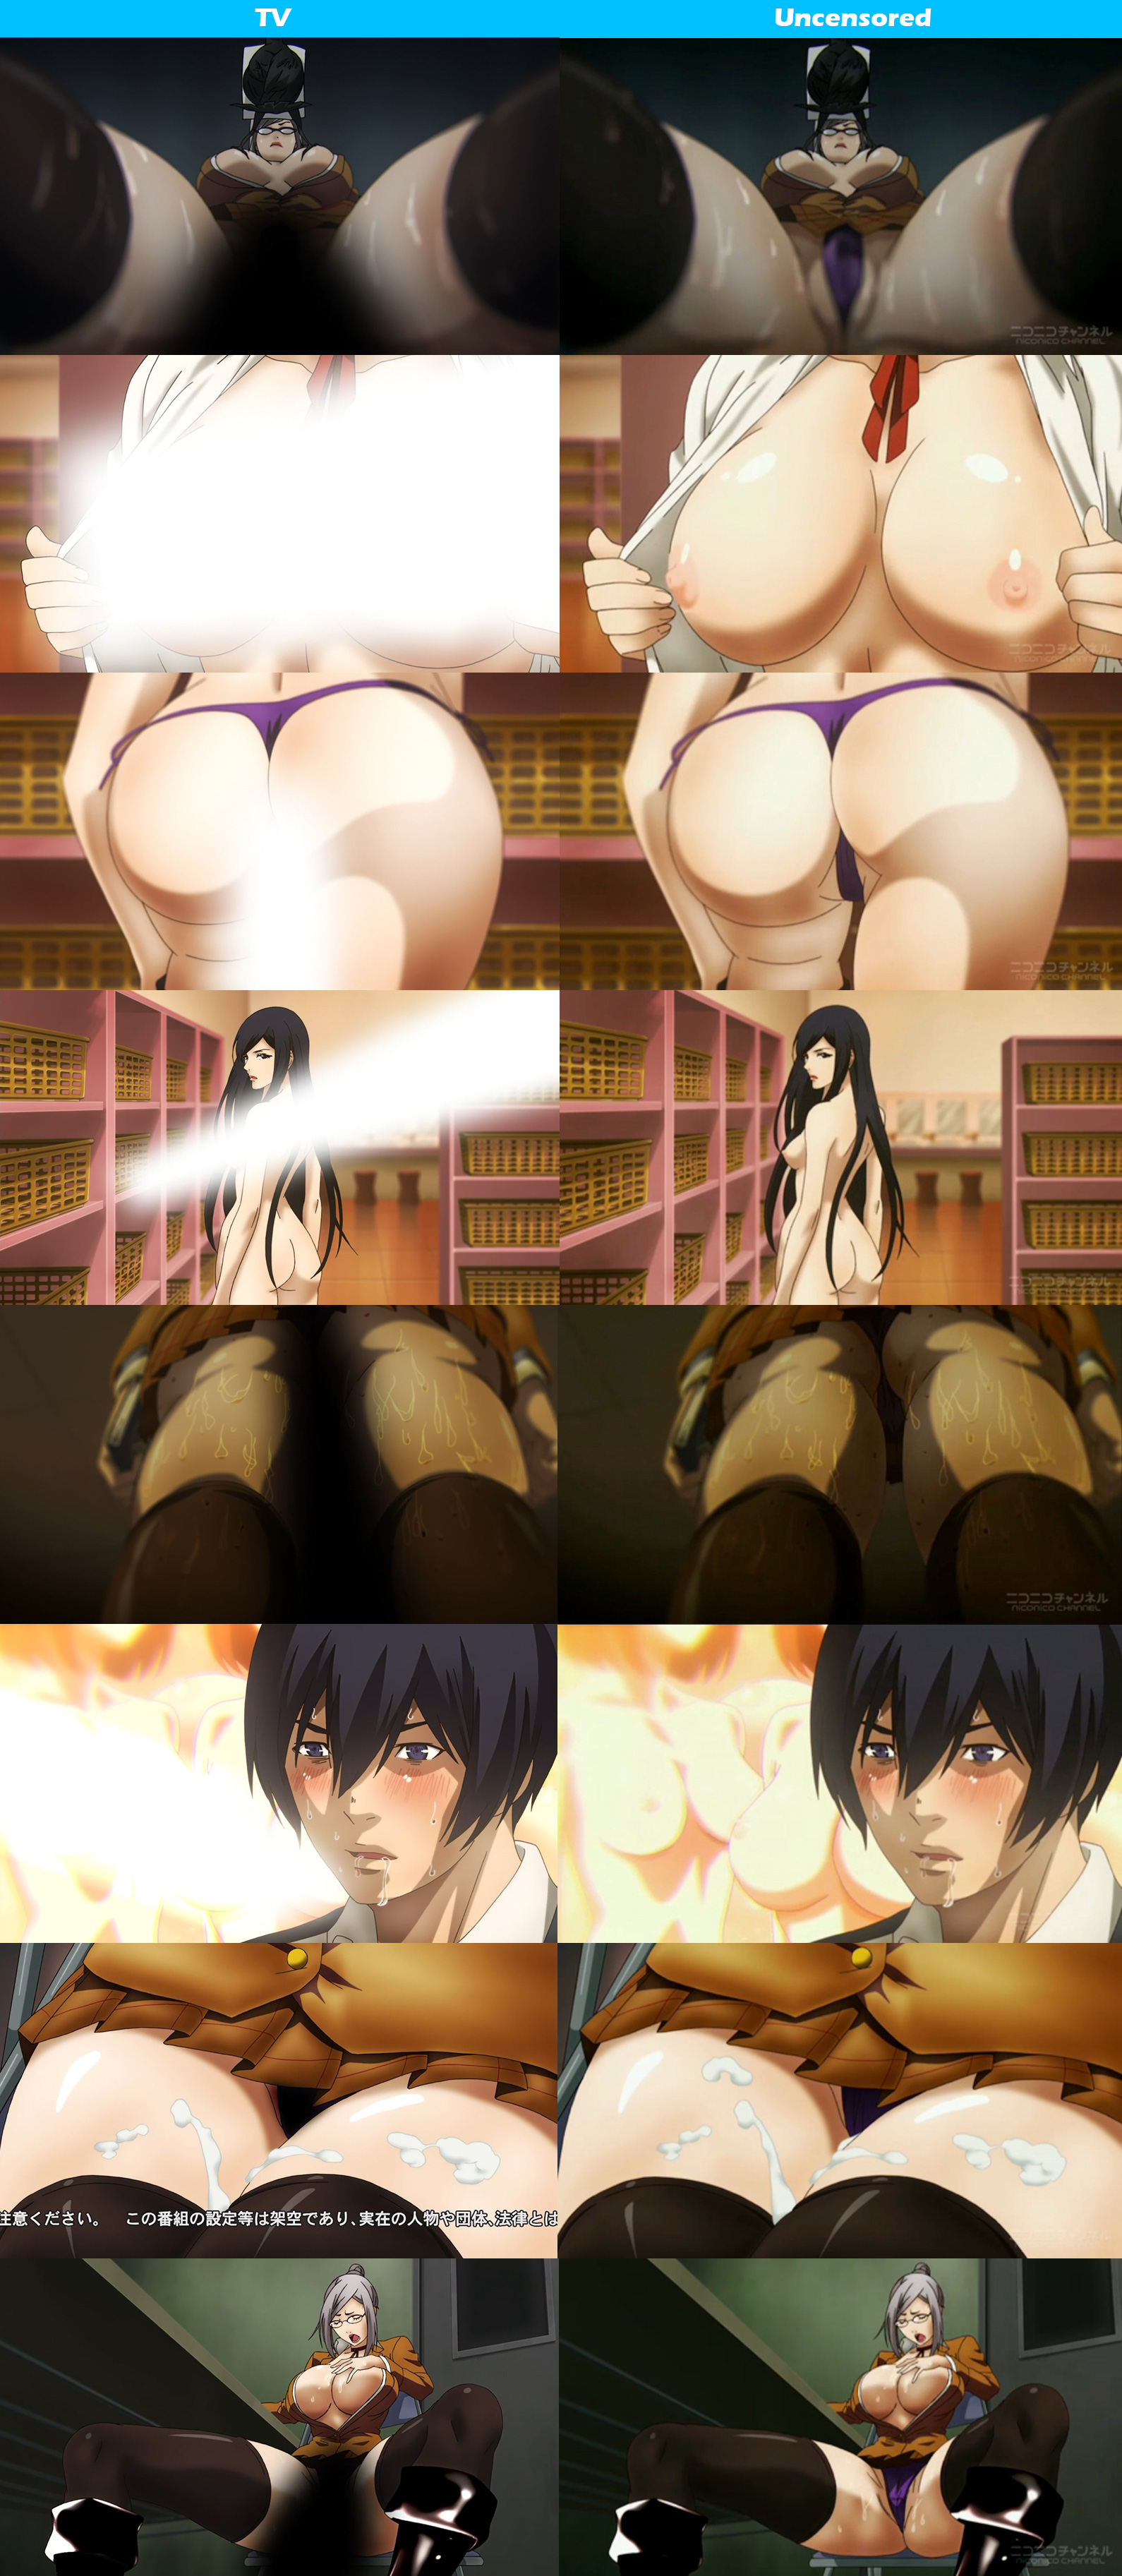 Prison-School-Anime-Censored-and-Uncensored Comparison-1